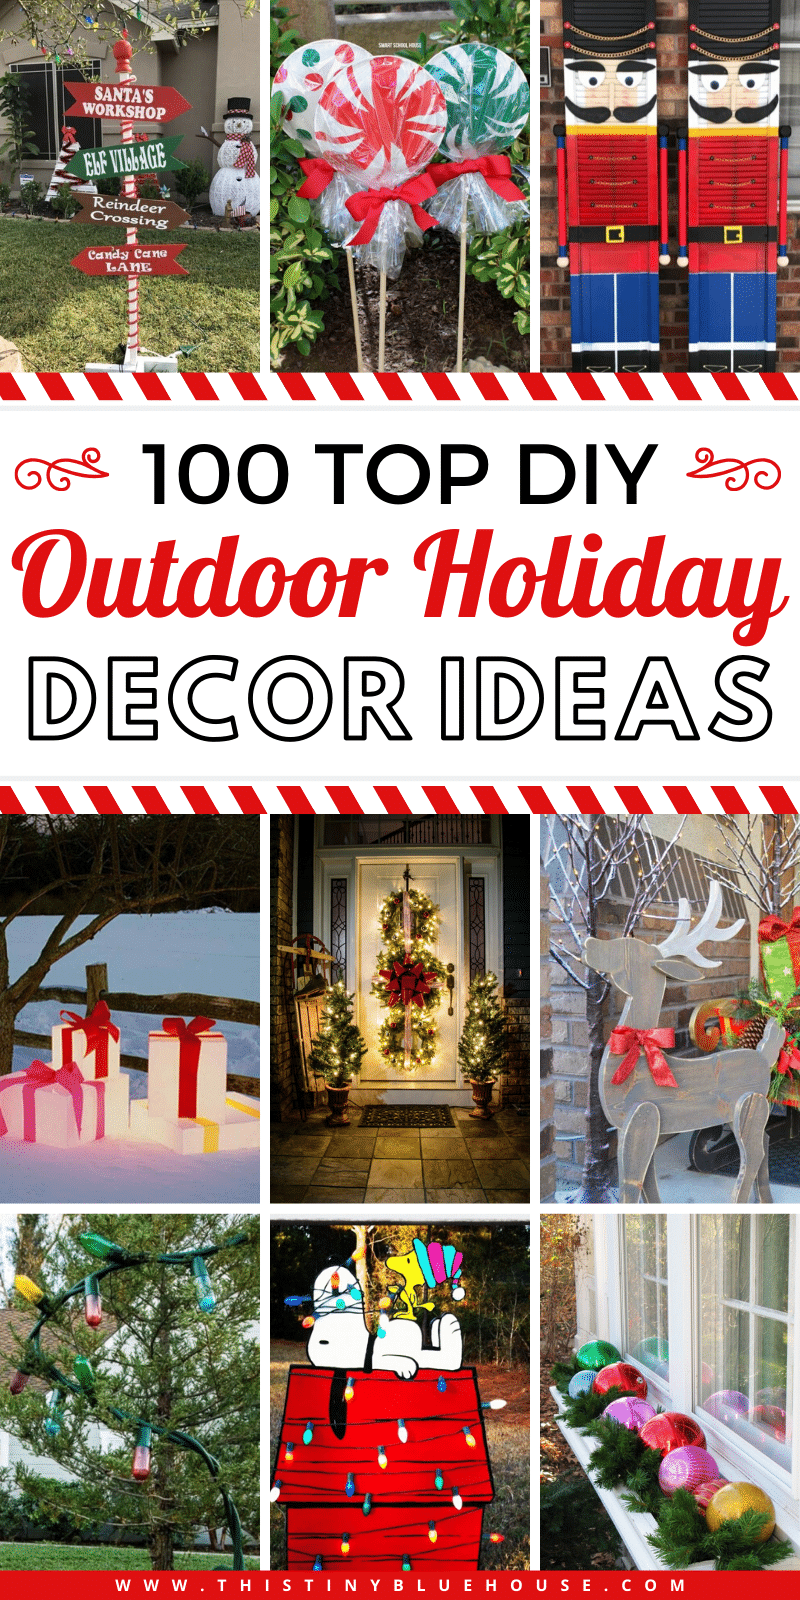 Here are 100+ best top outdoor Christmas decor ideas that will make the outside of your home festive in time for the holidays. #OutdoorChristmasDecorations #OutdoorChristmasDecorationDIY #OutdoorChristmasDecorDIY #DIYOutsideChristmasDecor